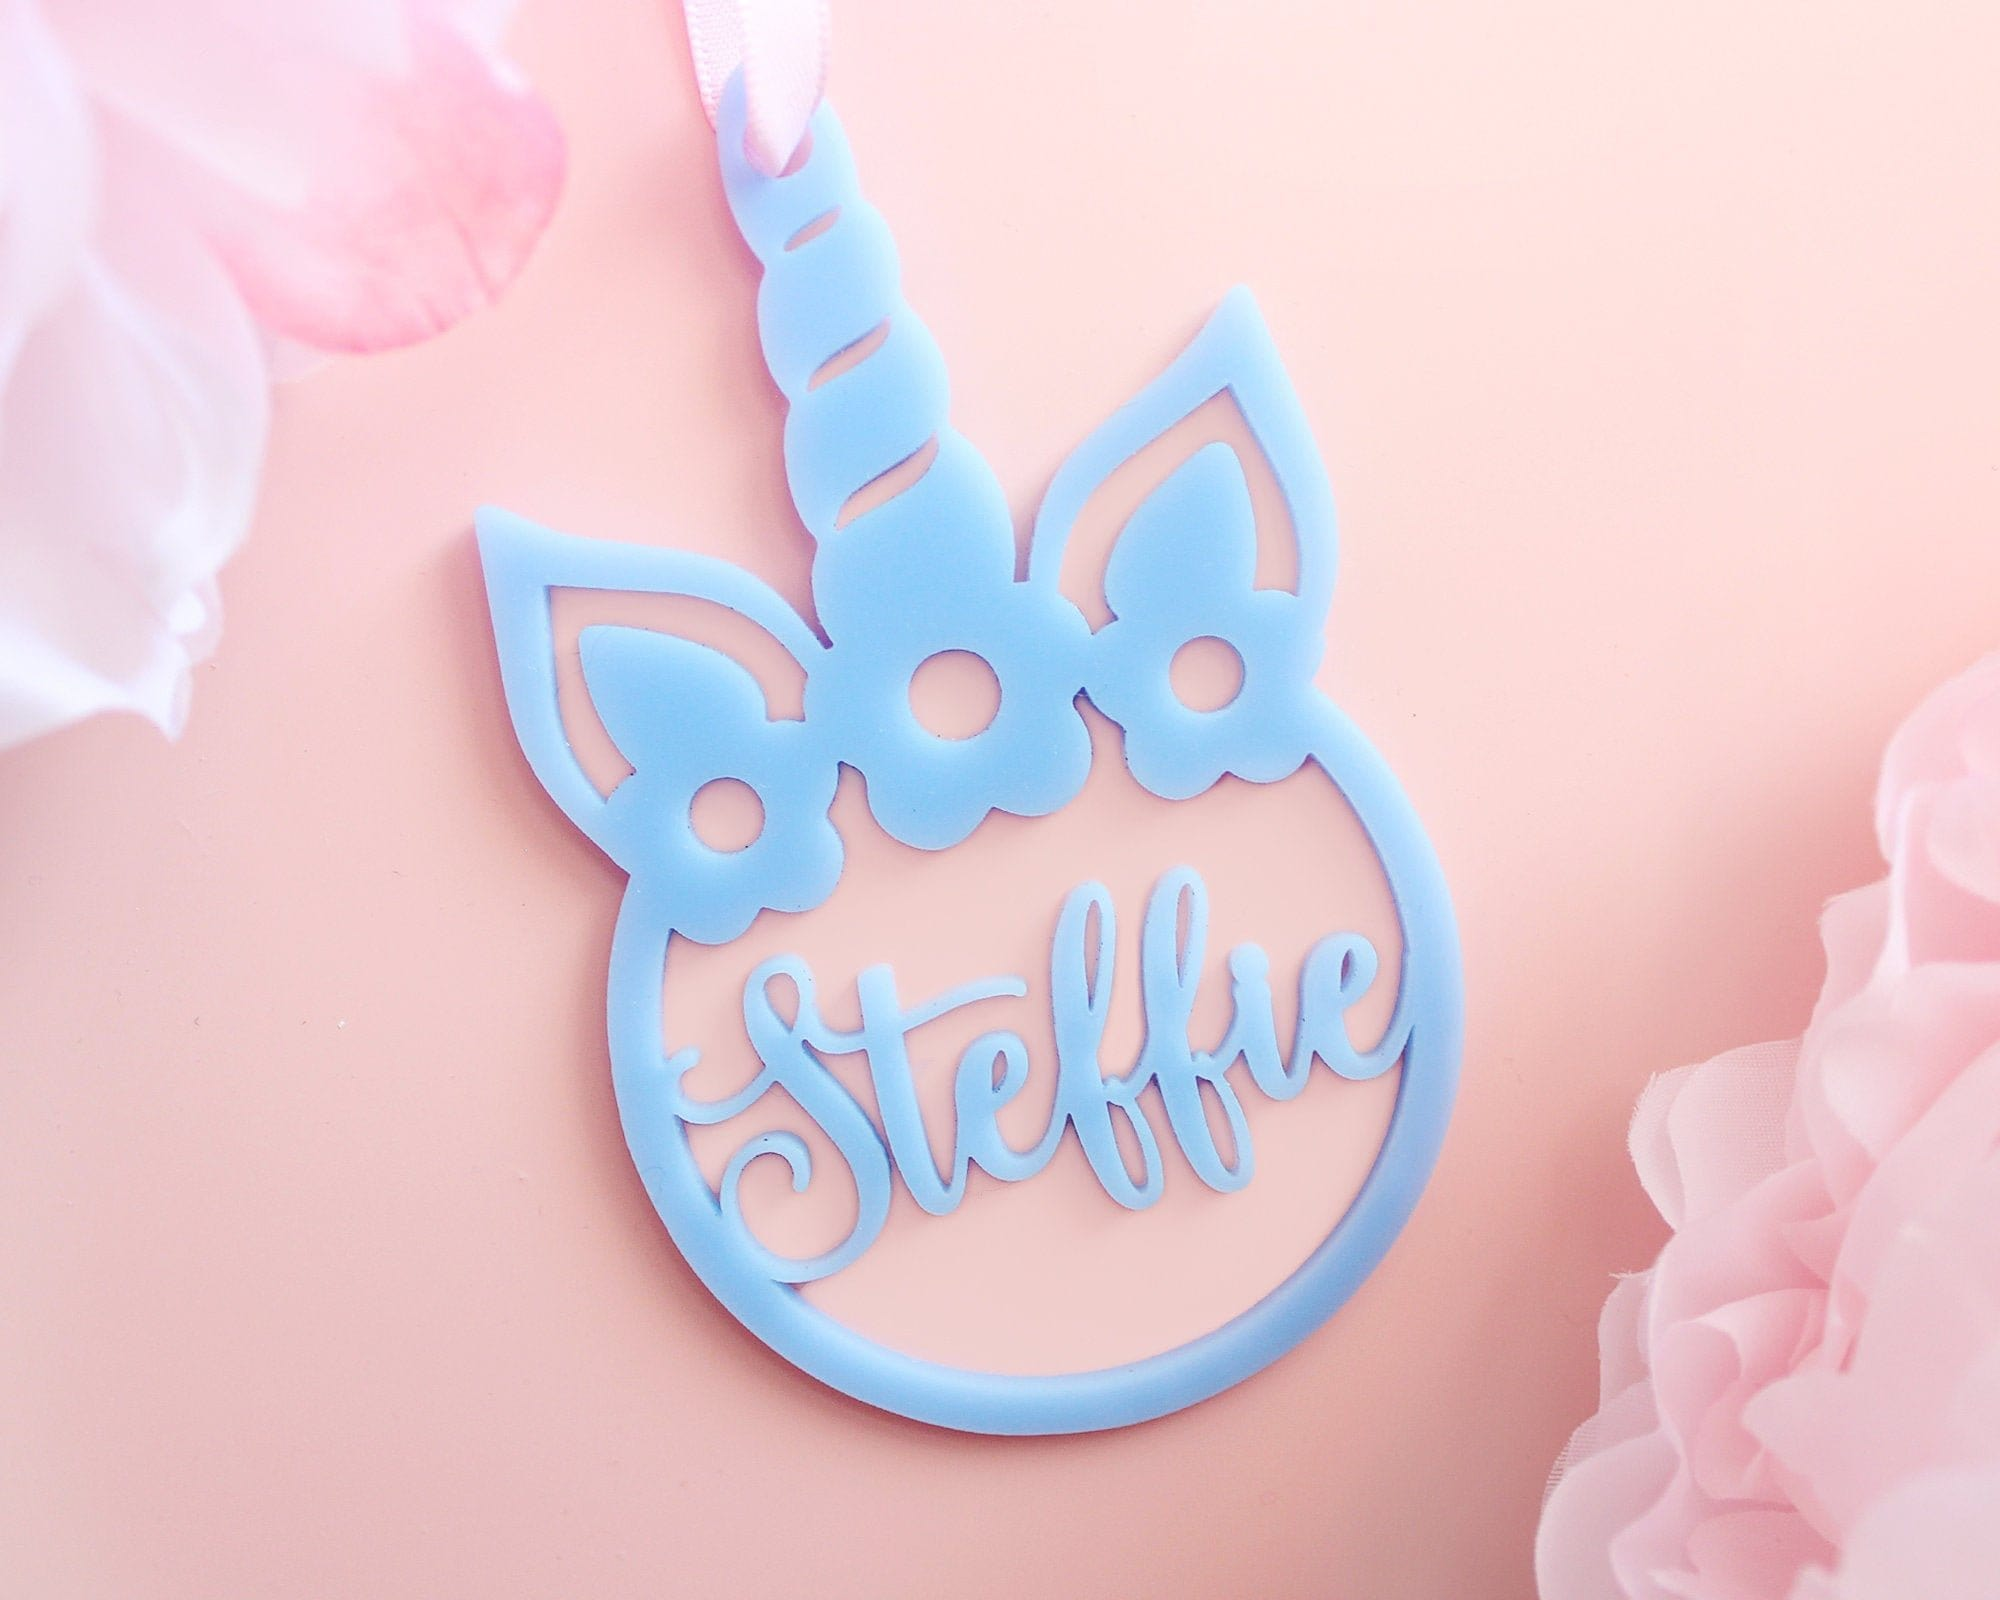 Personalized Unicorn Laser Cut Christmas Ornament Laser Cut Acrylic Bauble